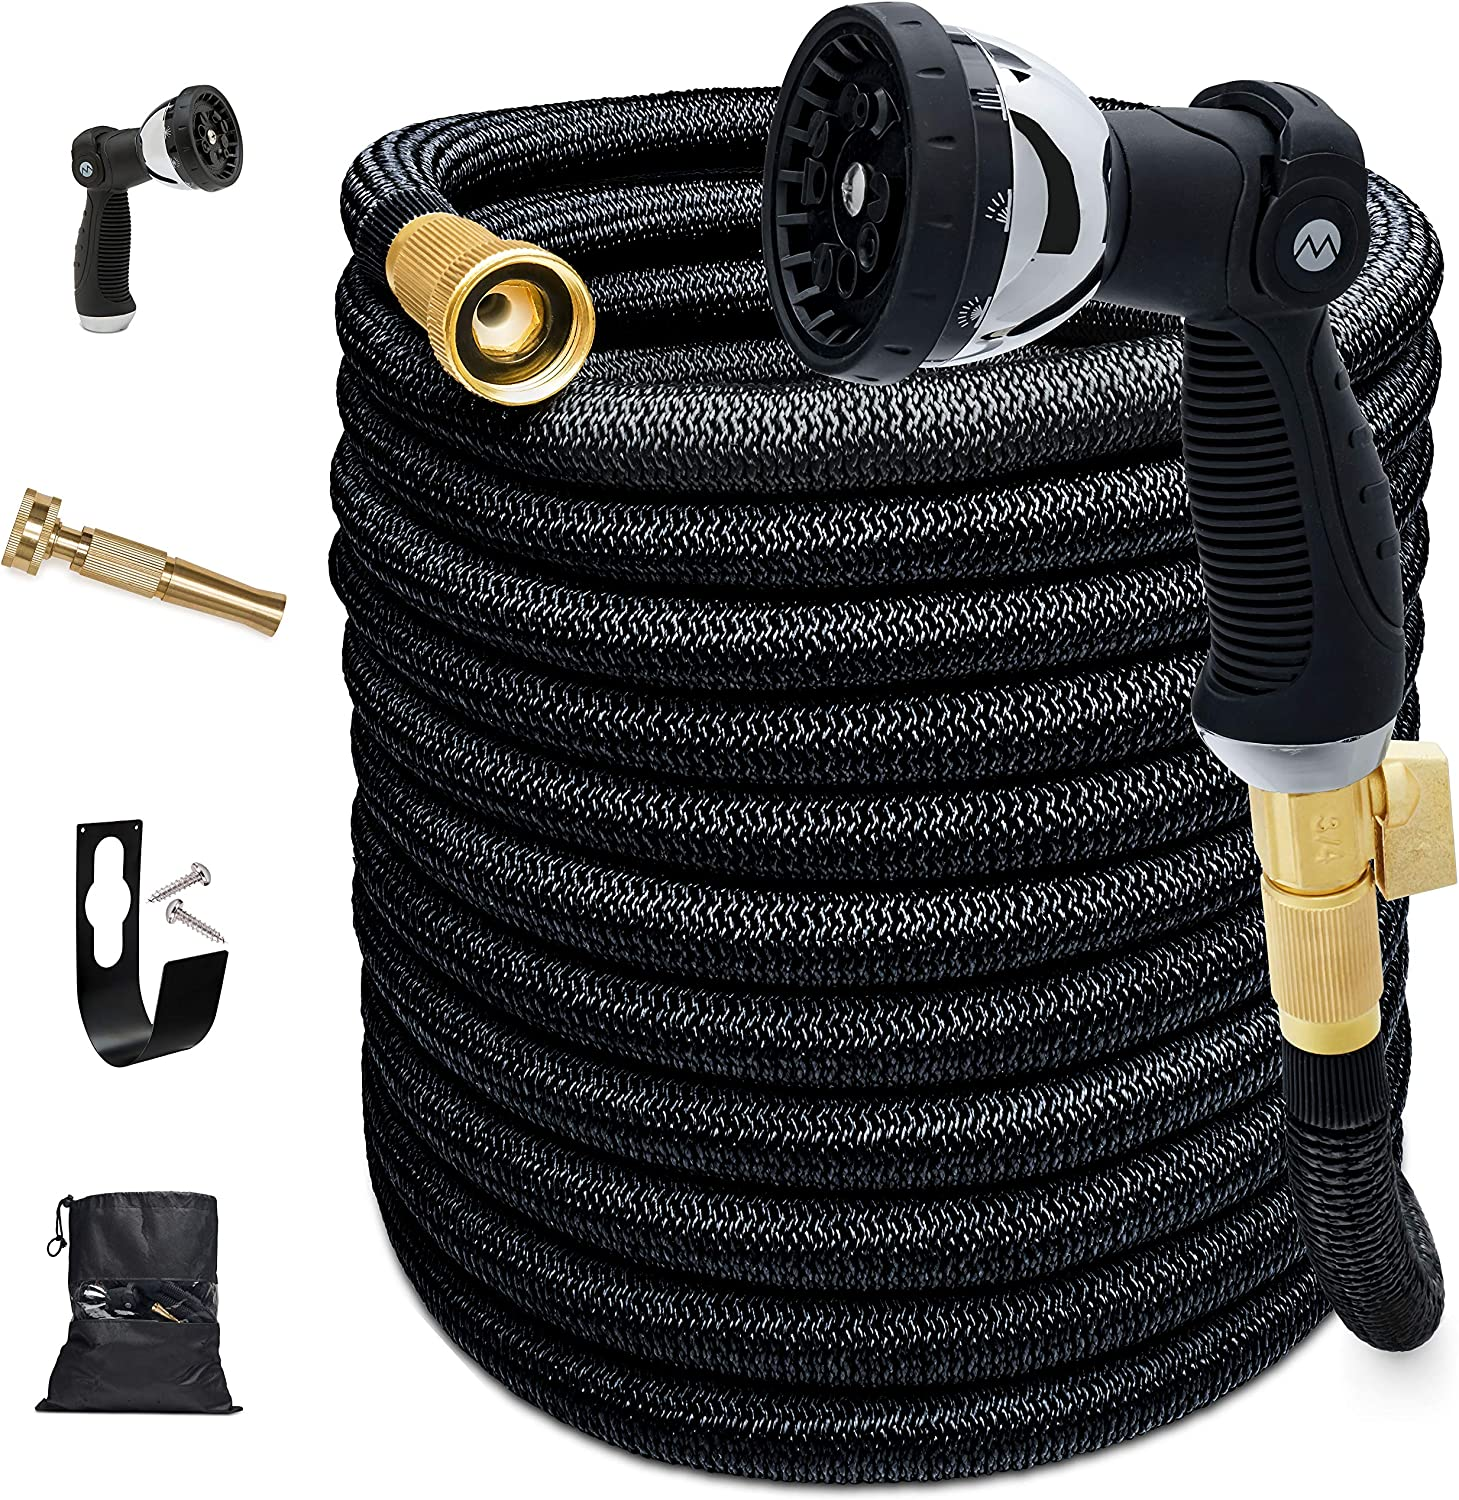 Morvat Expandable Garden Hose 150 FT - Most Superior Strength 5500D & 3 Layer Latex Flexible hose, Auto ON/OFF Brass Connection, 10 Setting Spray Nozzle, Hose Holder & Carry Bag